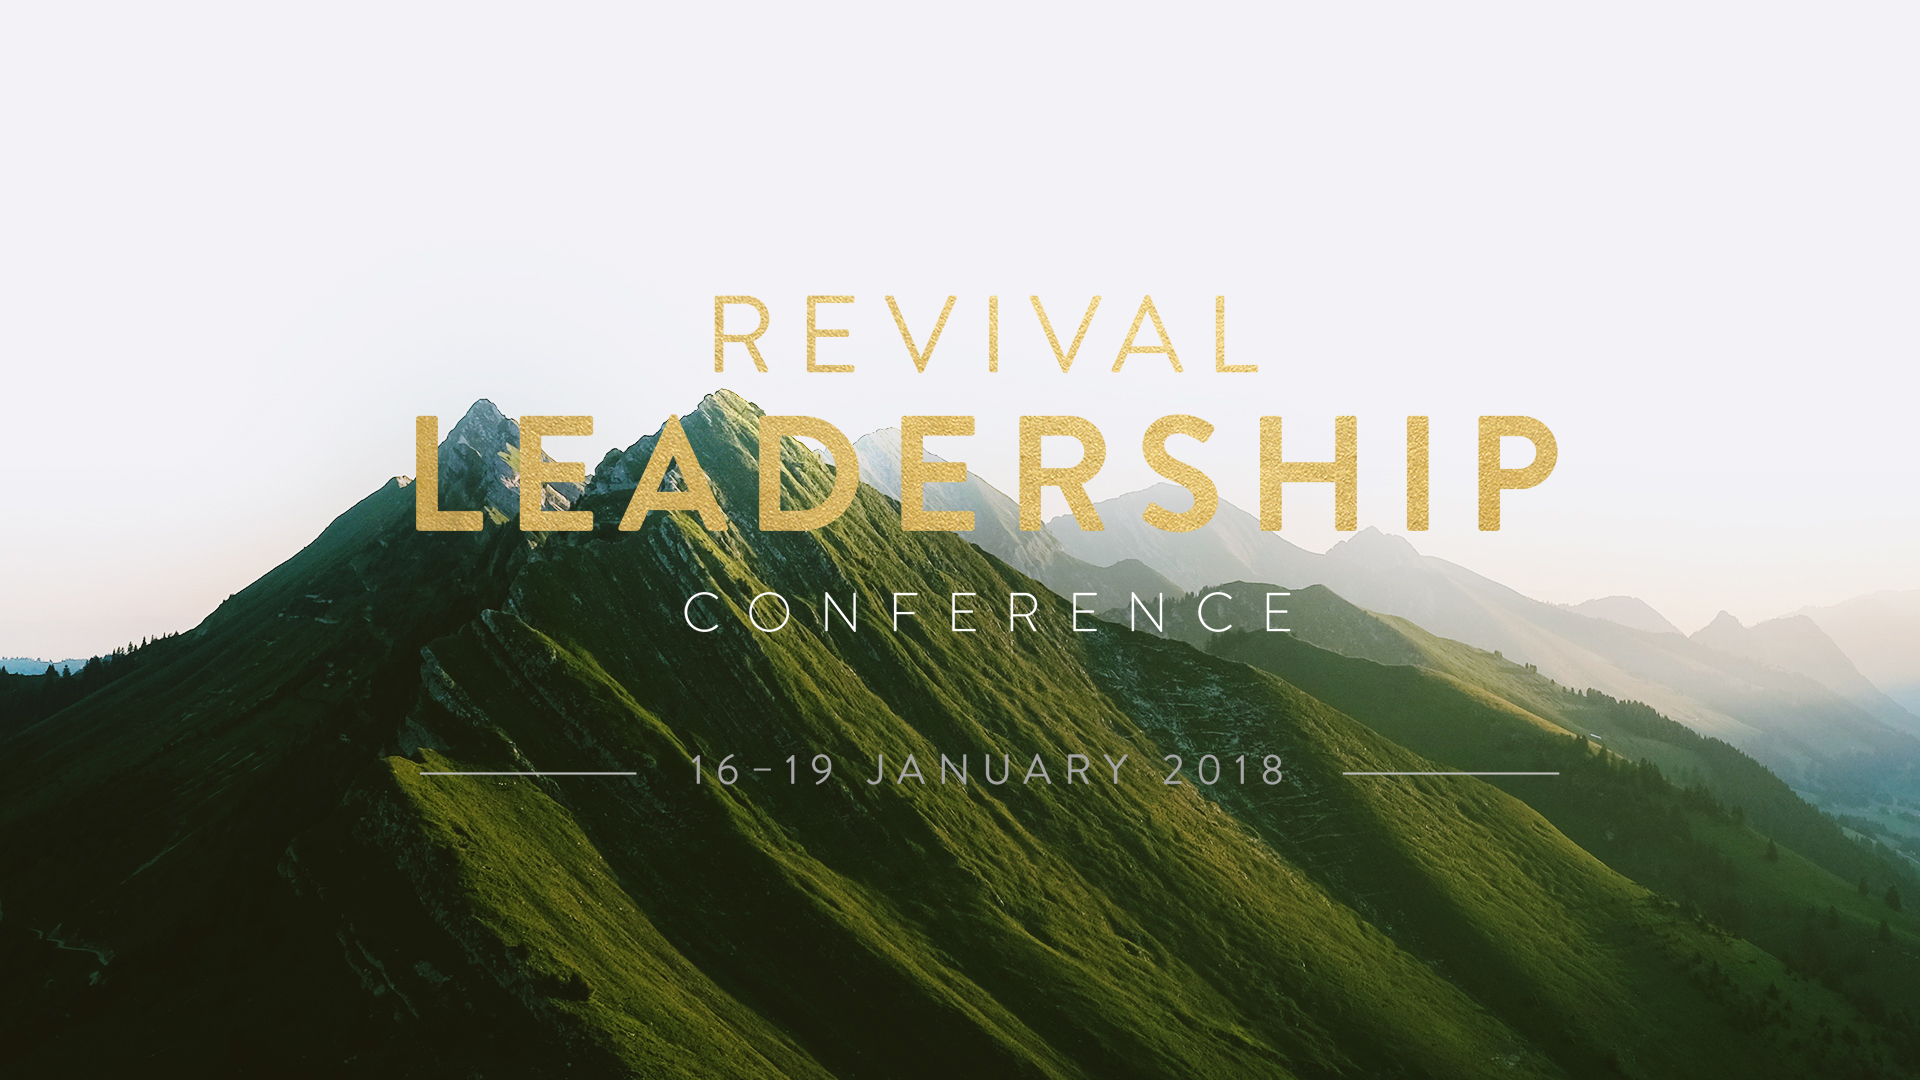 Tickets for Revival Leadership Conference | 2018 in Toronto from BuzzTix